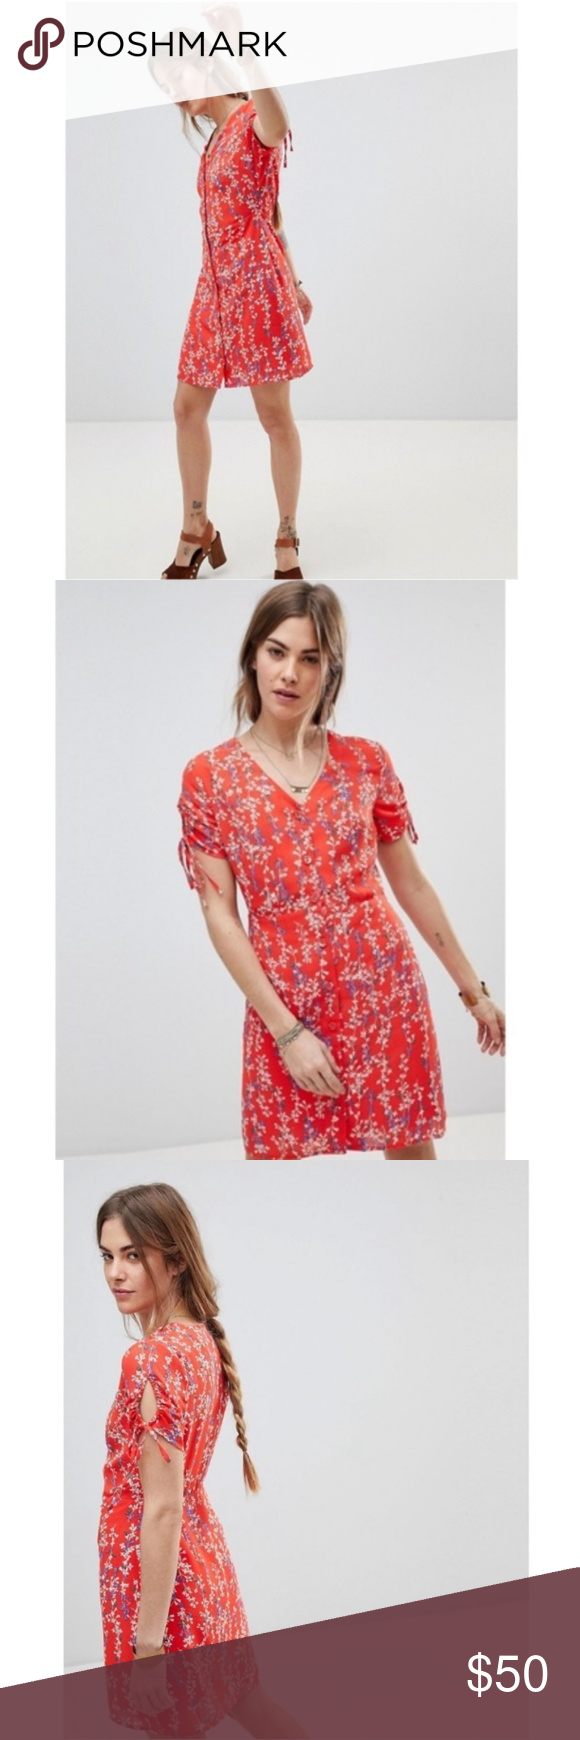 1b939b09406 Moon River Red Ditsy Floral Wrap Dress Red Ditsy Floral Wrap Dress by Moon  River from